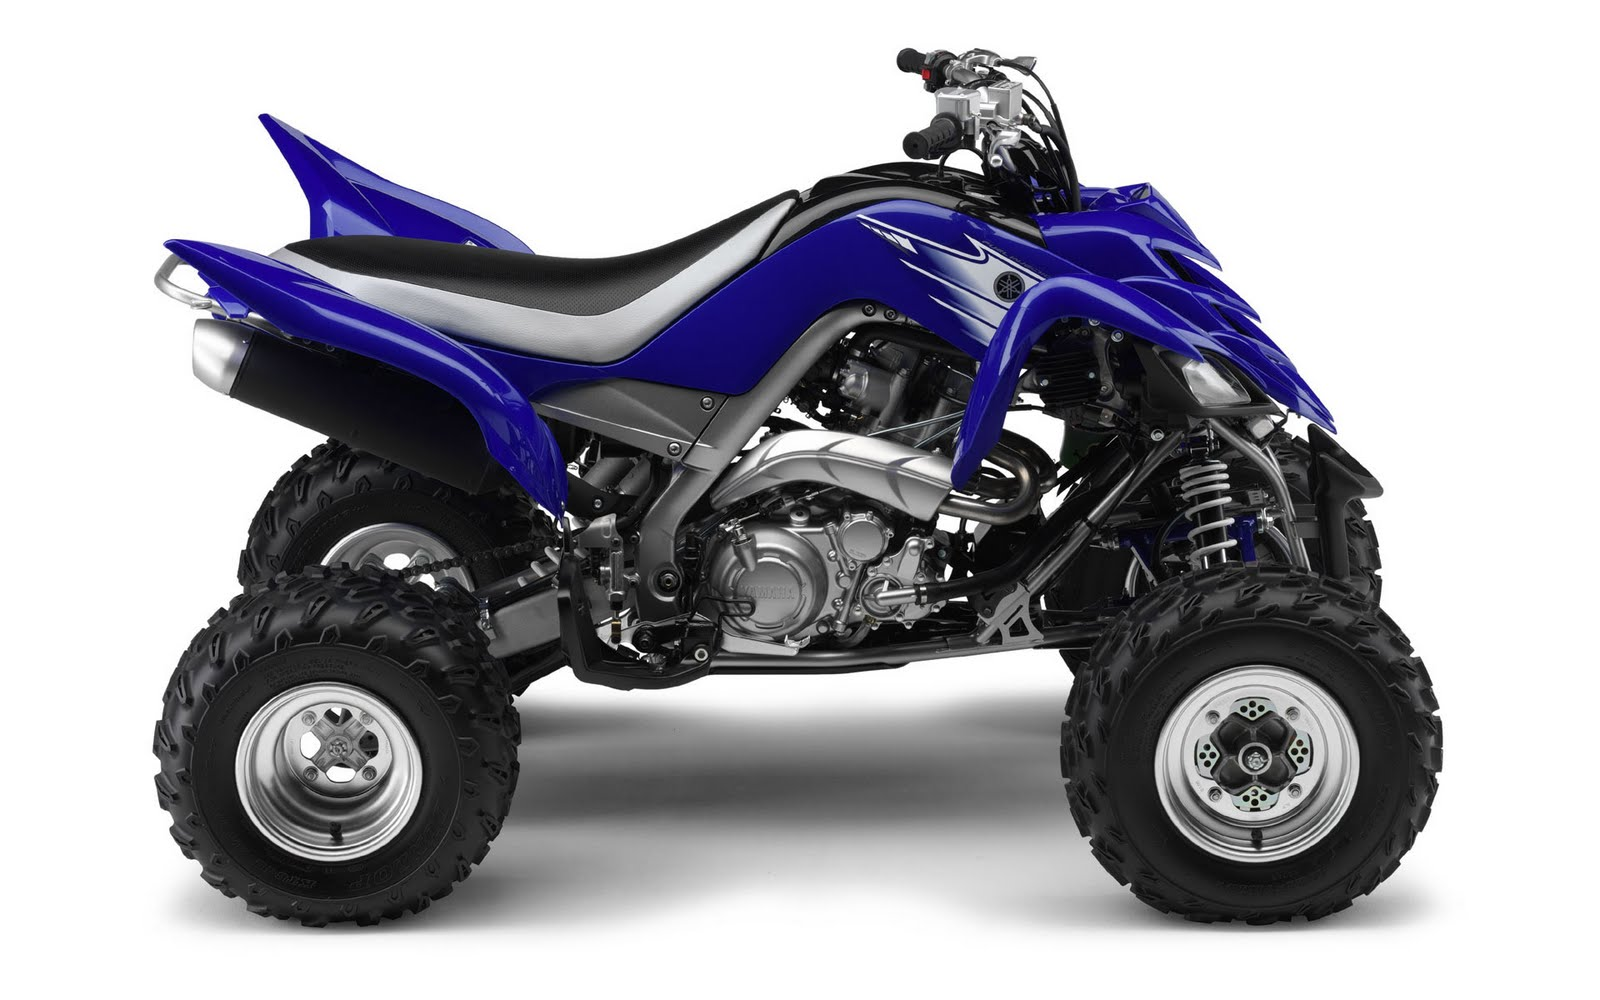 Yamaha Atv Wallpaper 7146 Hd Wallpapers in Bikes   Imagescicom 1600x1000